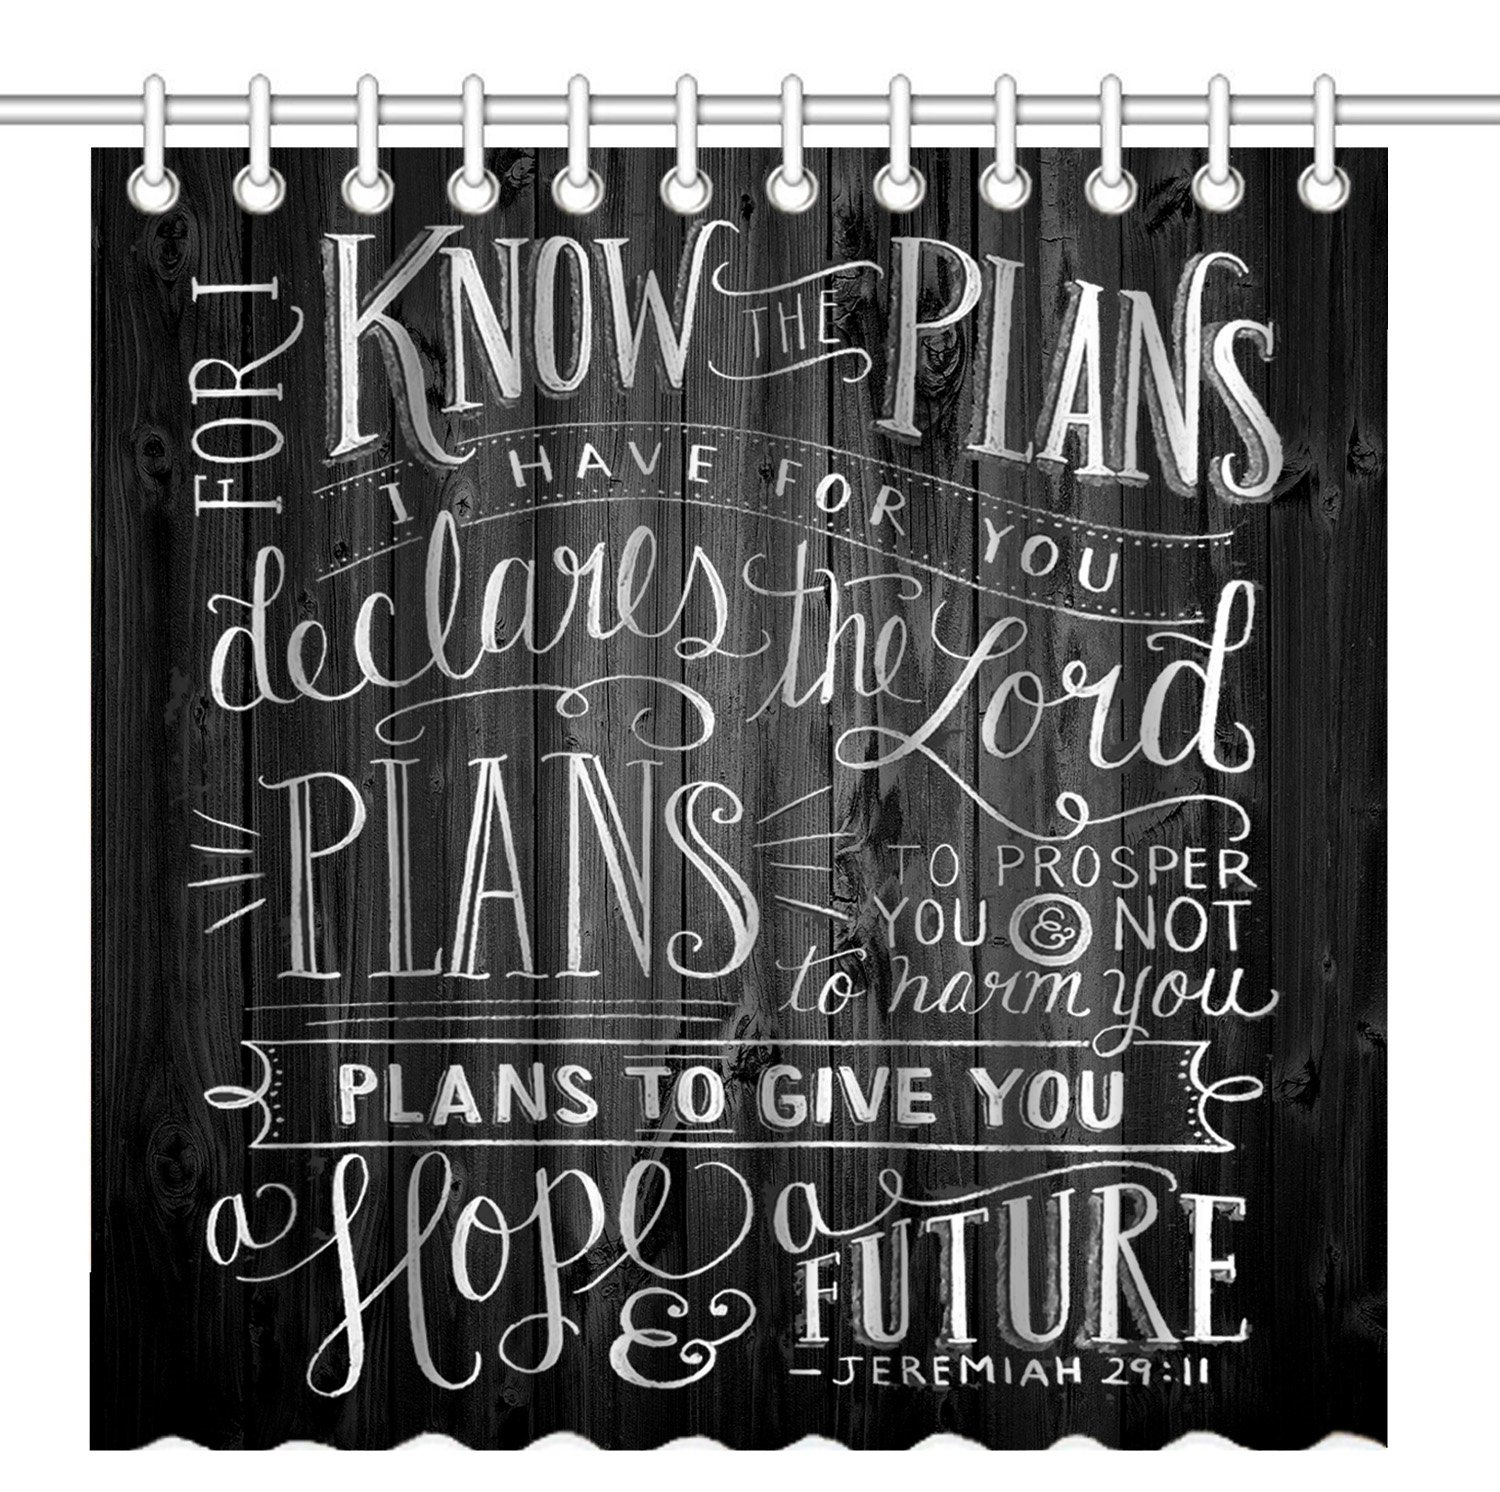 Wknoon 72 x 72 Inch Shower Curtain, Vintage Christian Inspirational Bible Verse Scripture Quotes on Deadwood, Waterproof Polyester Fabric Decorative Bath Curtains by Wknoon